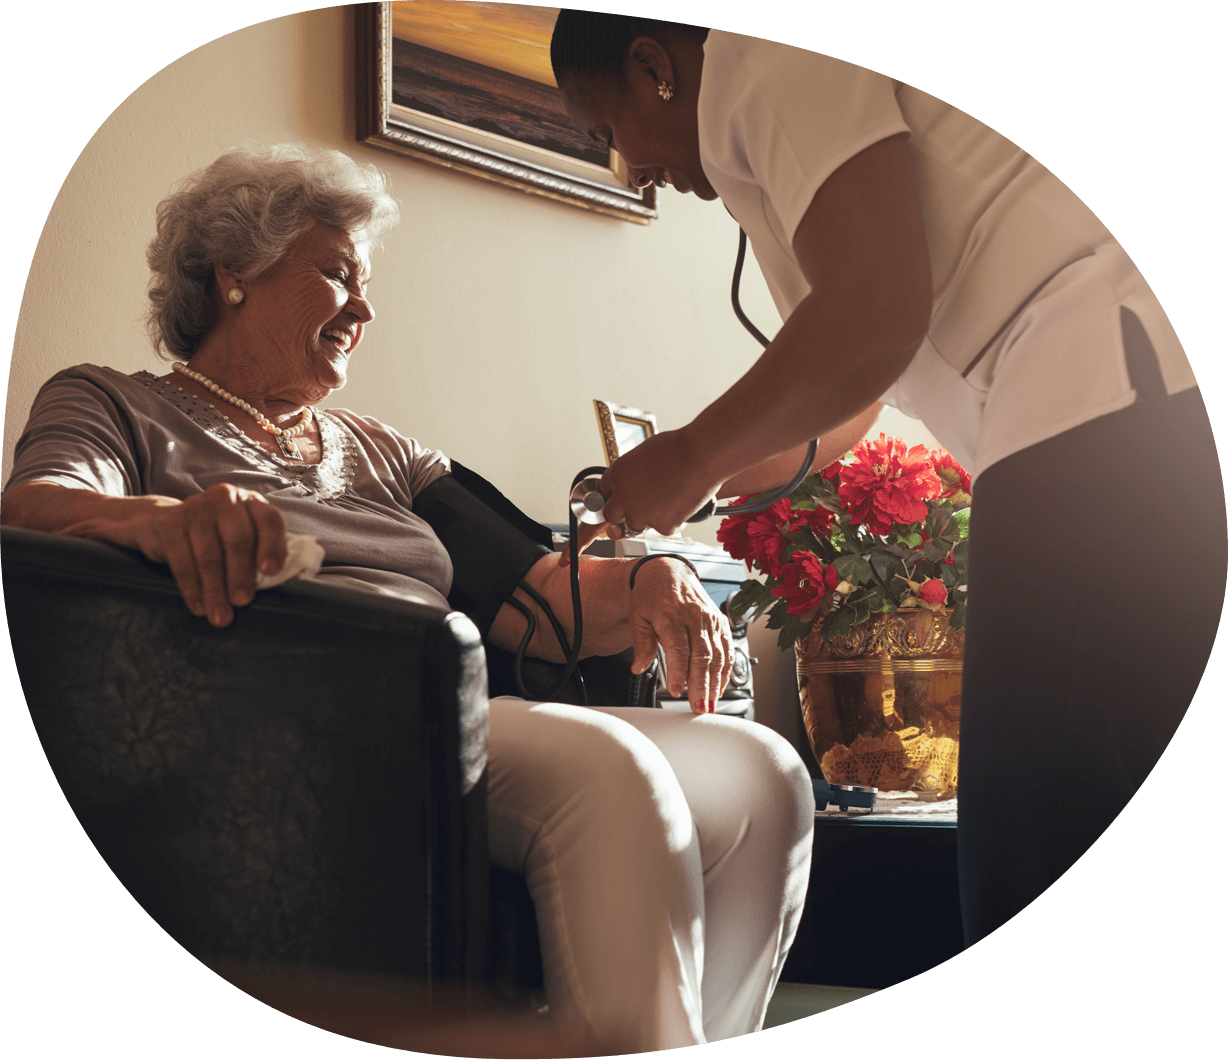 About Lotus Home Care